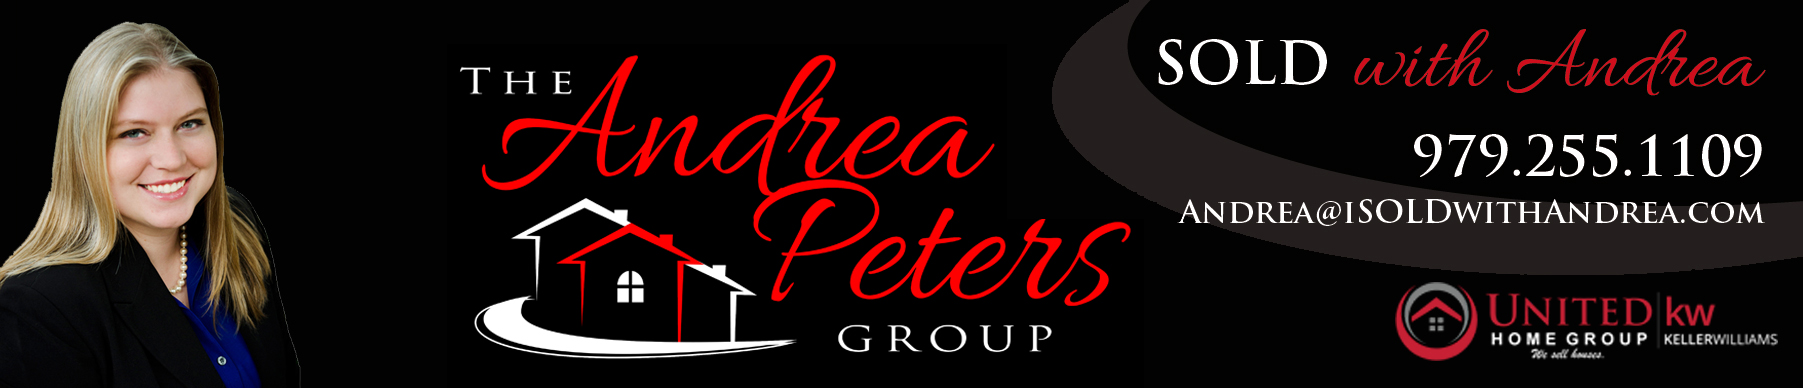 Andrea Peters Email Banner (2).jpg